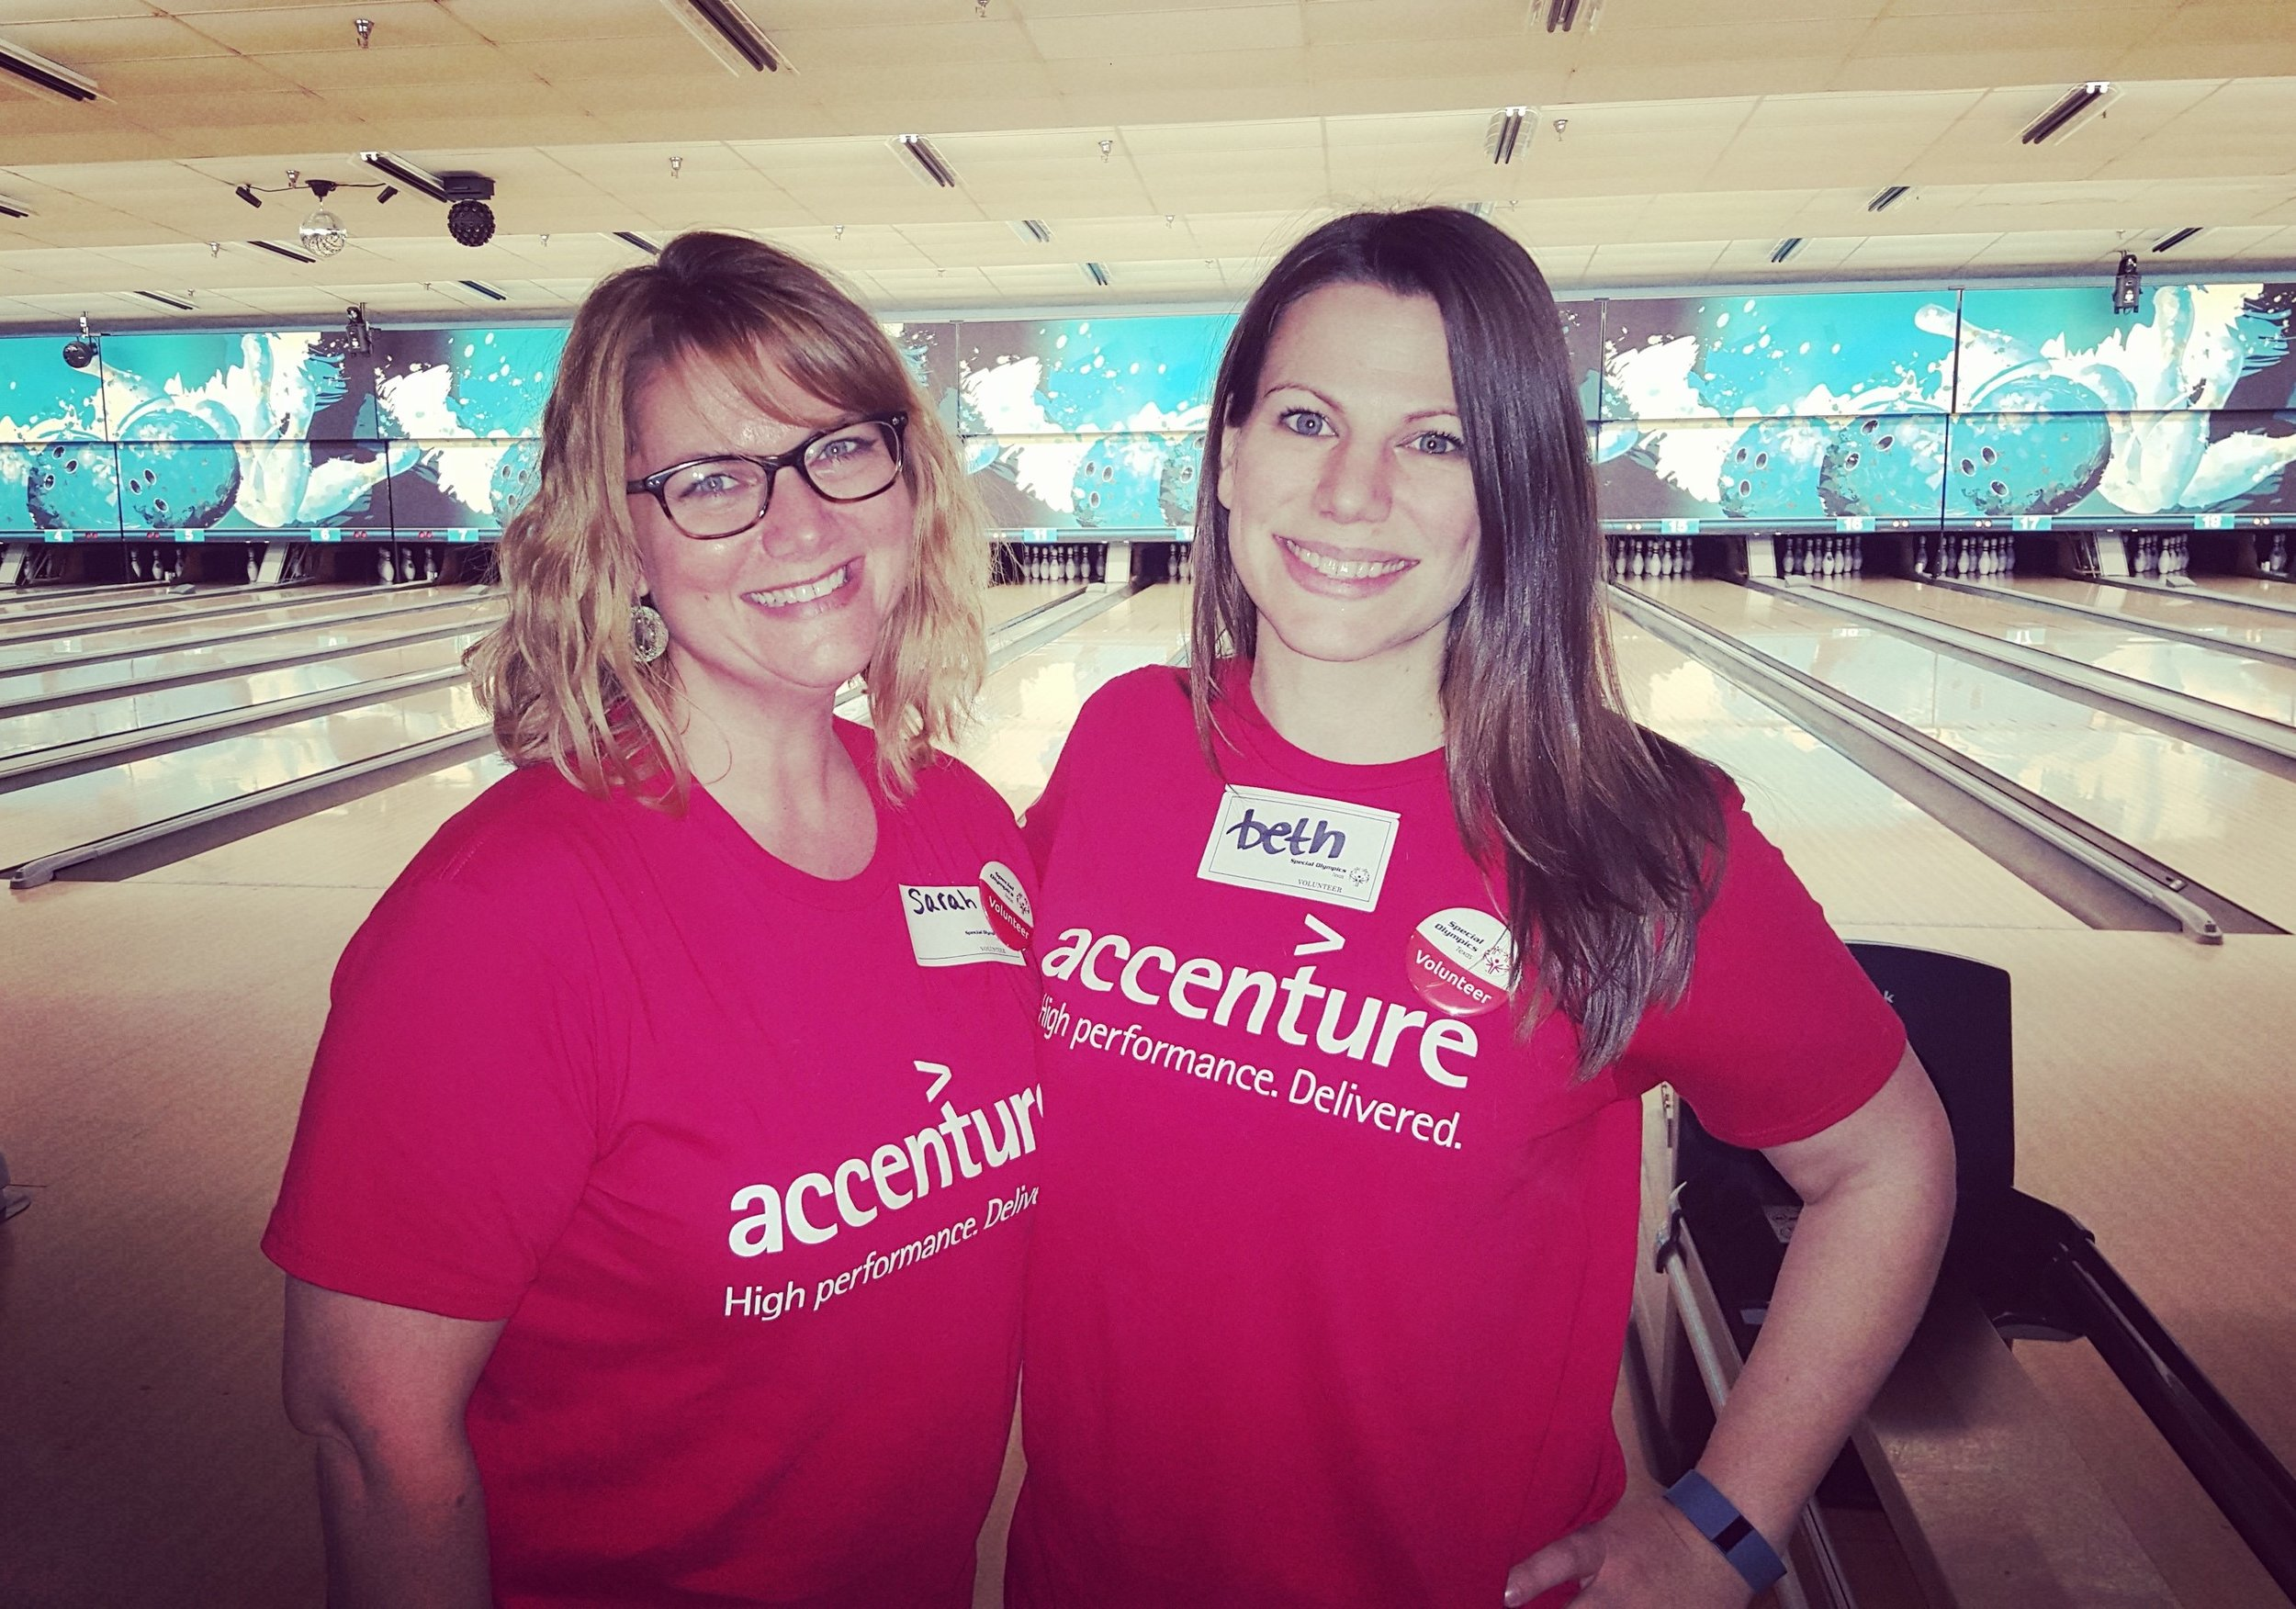 Sarah Cline, and her Austin ERG Co-lead, Beth Patterson during the Austin Special Olympics Bowling Event.